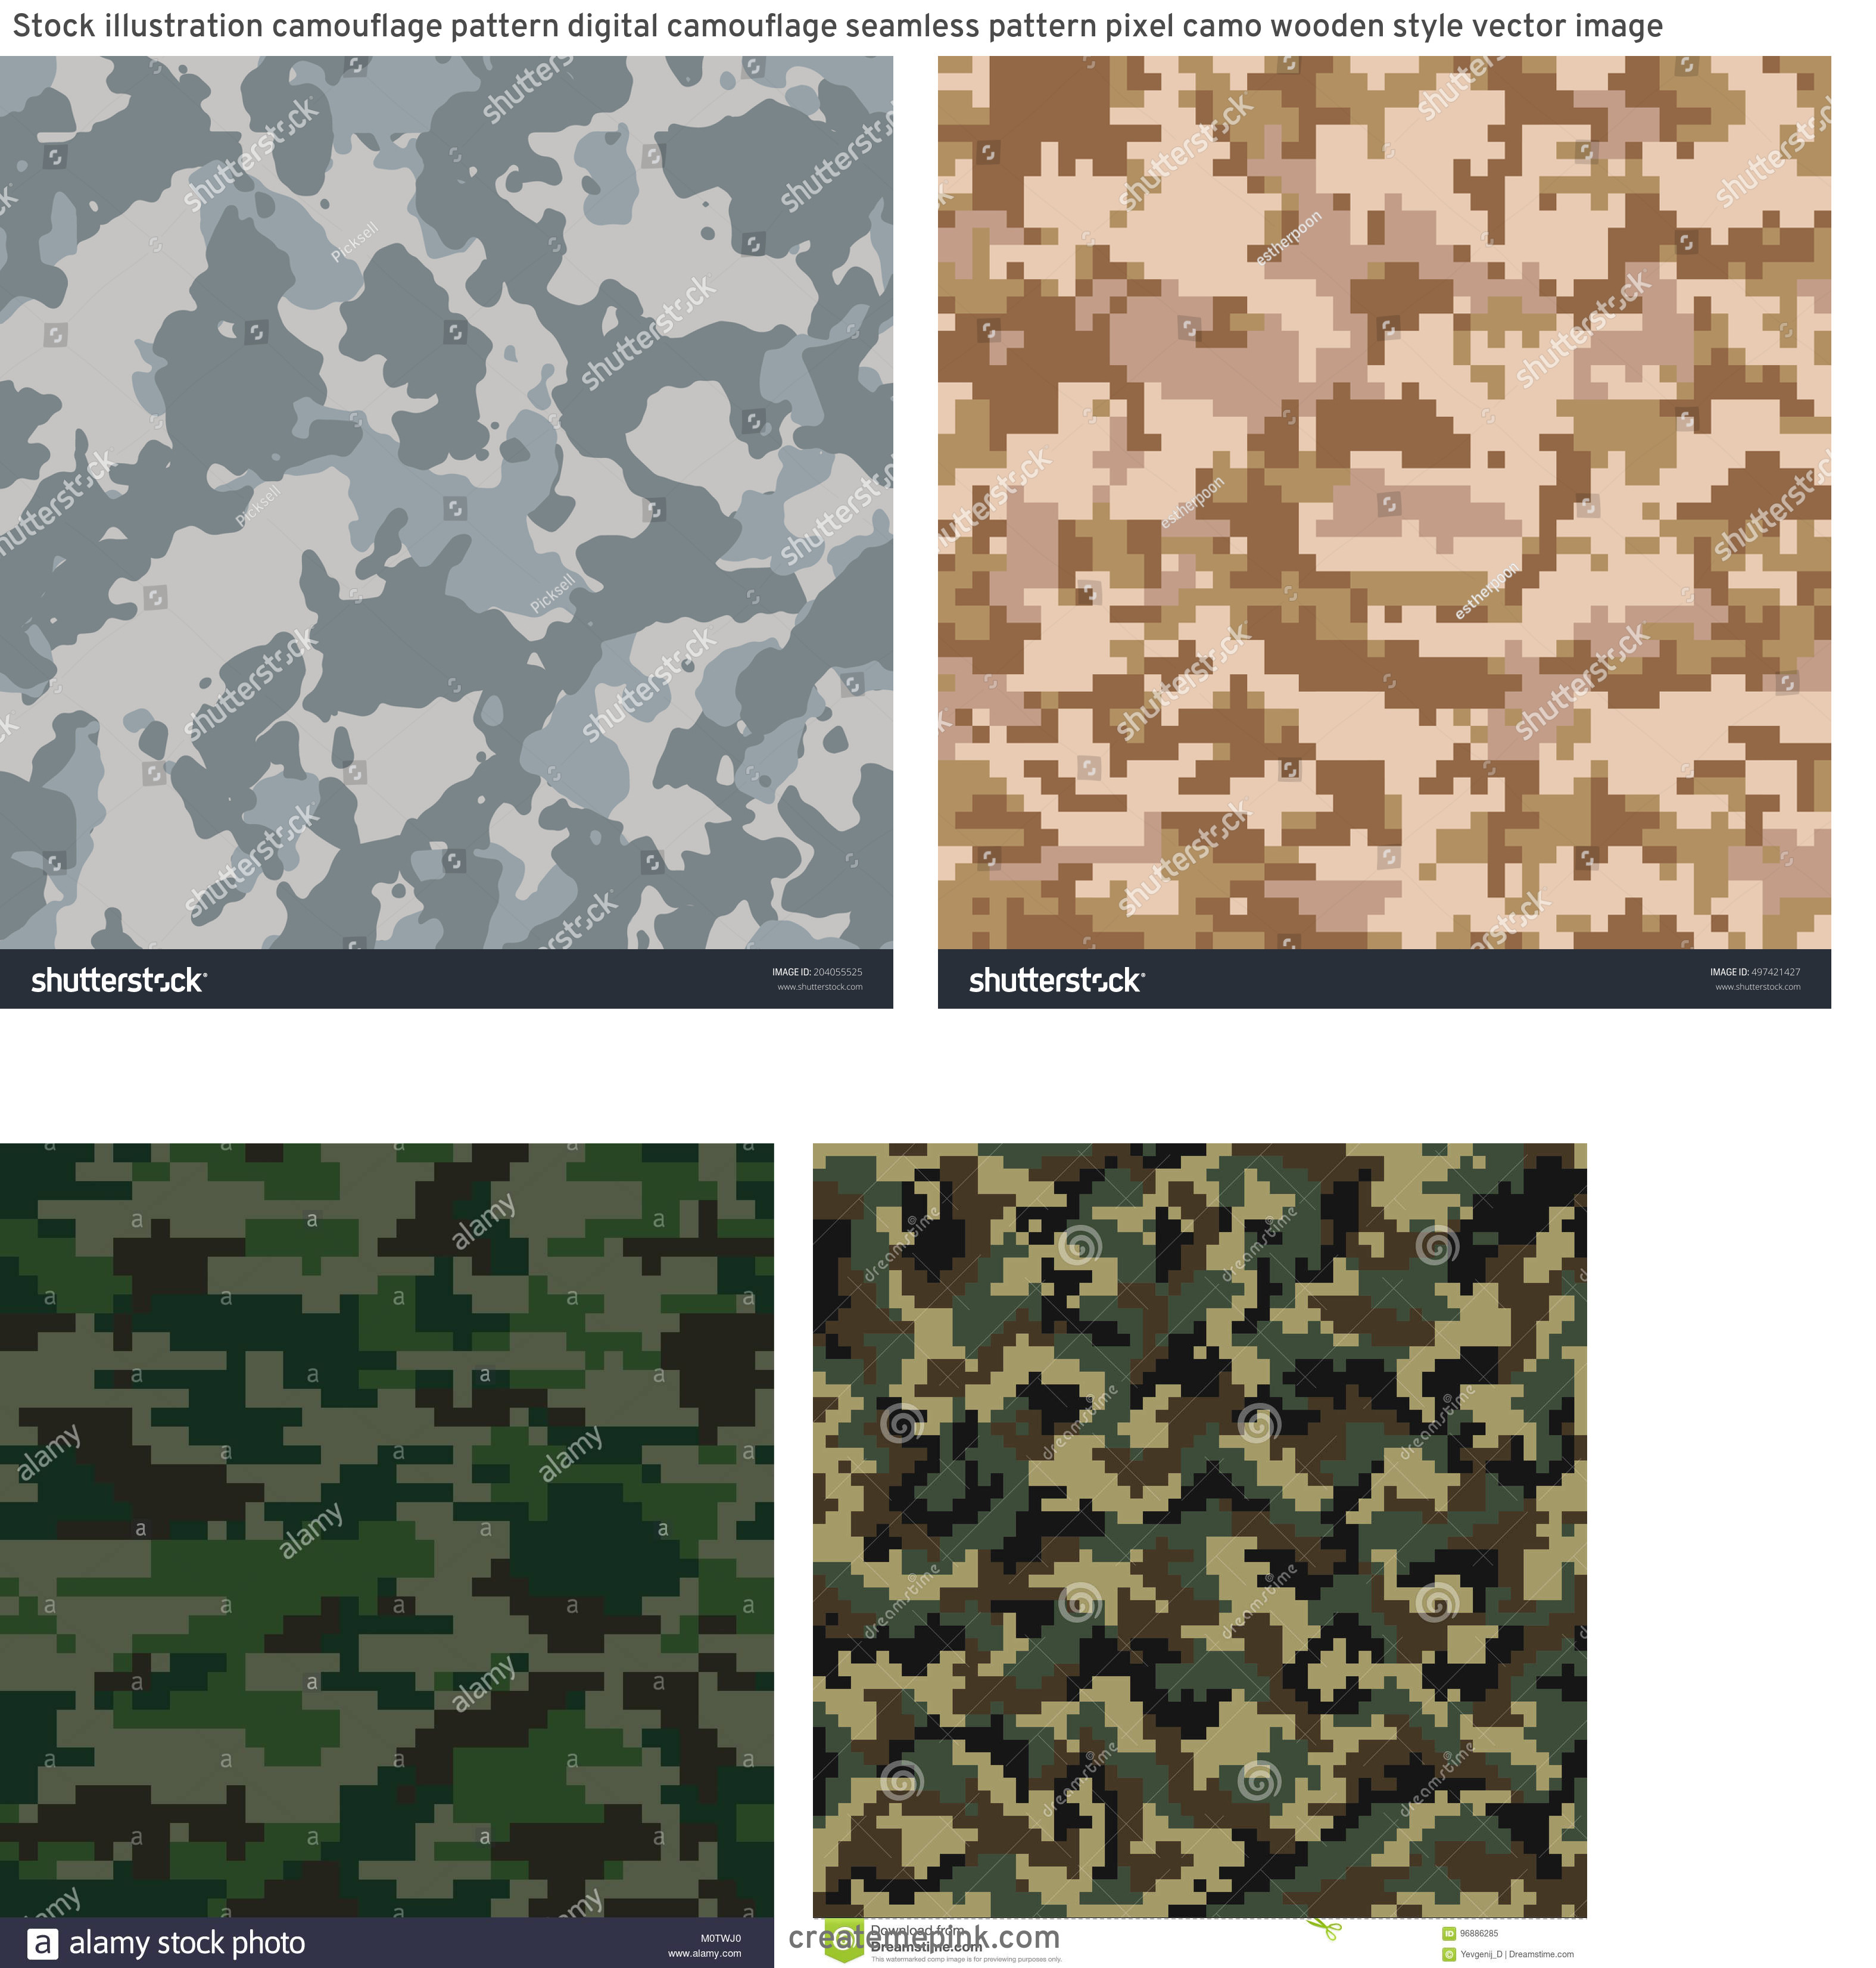 ACU Pattern Vector: Stock Illustration Camouflage Pattern Digital Camouflage Seamless Pattern Pixel Camo Wooden Style Vector Image